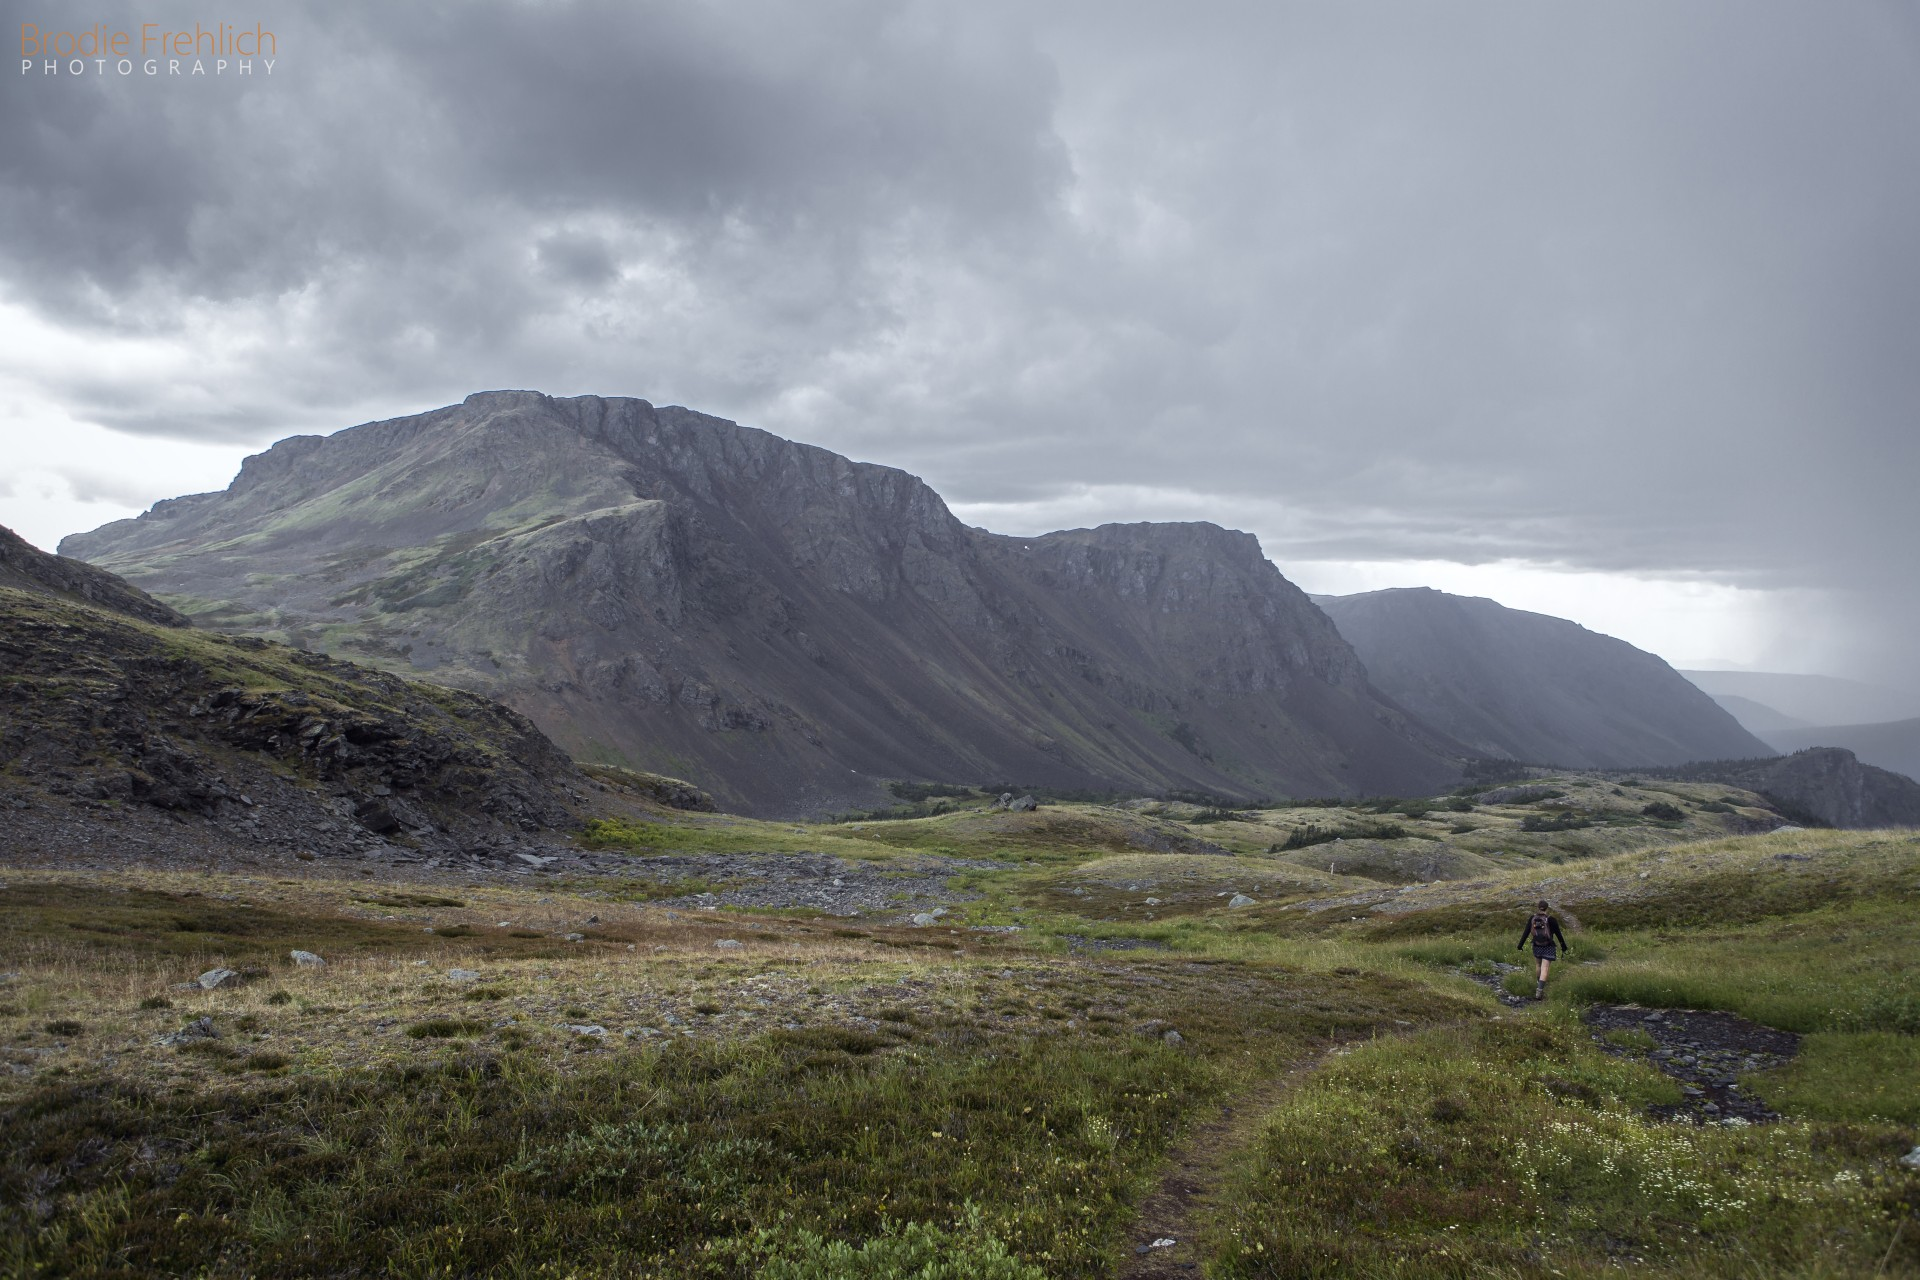 2014 Landscapes - Babine Mountain Range, BC